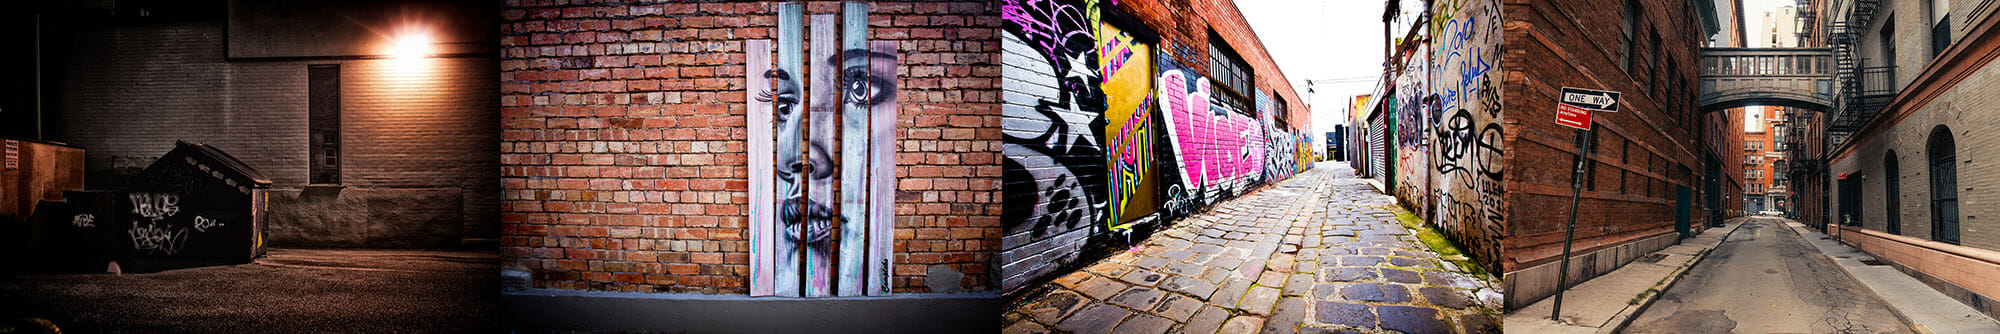 wall alleyway graffitti light night urban art spray paint street photography portrait city people camera subject light how to tutorial guide